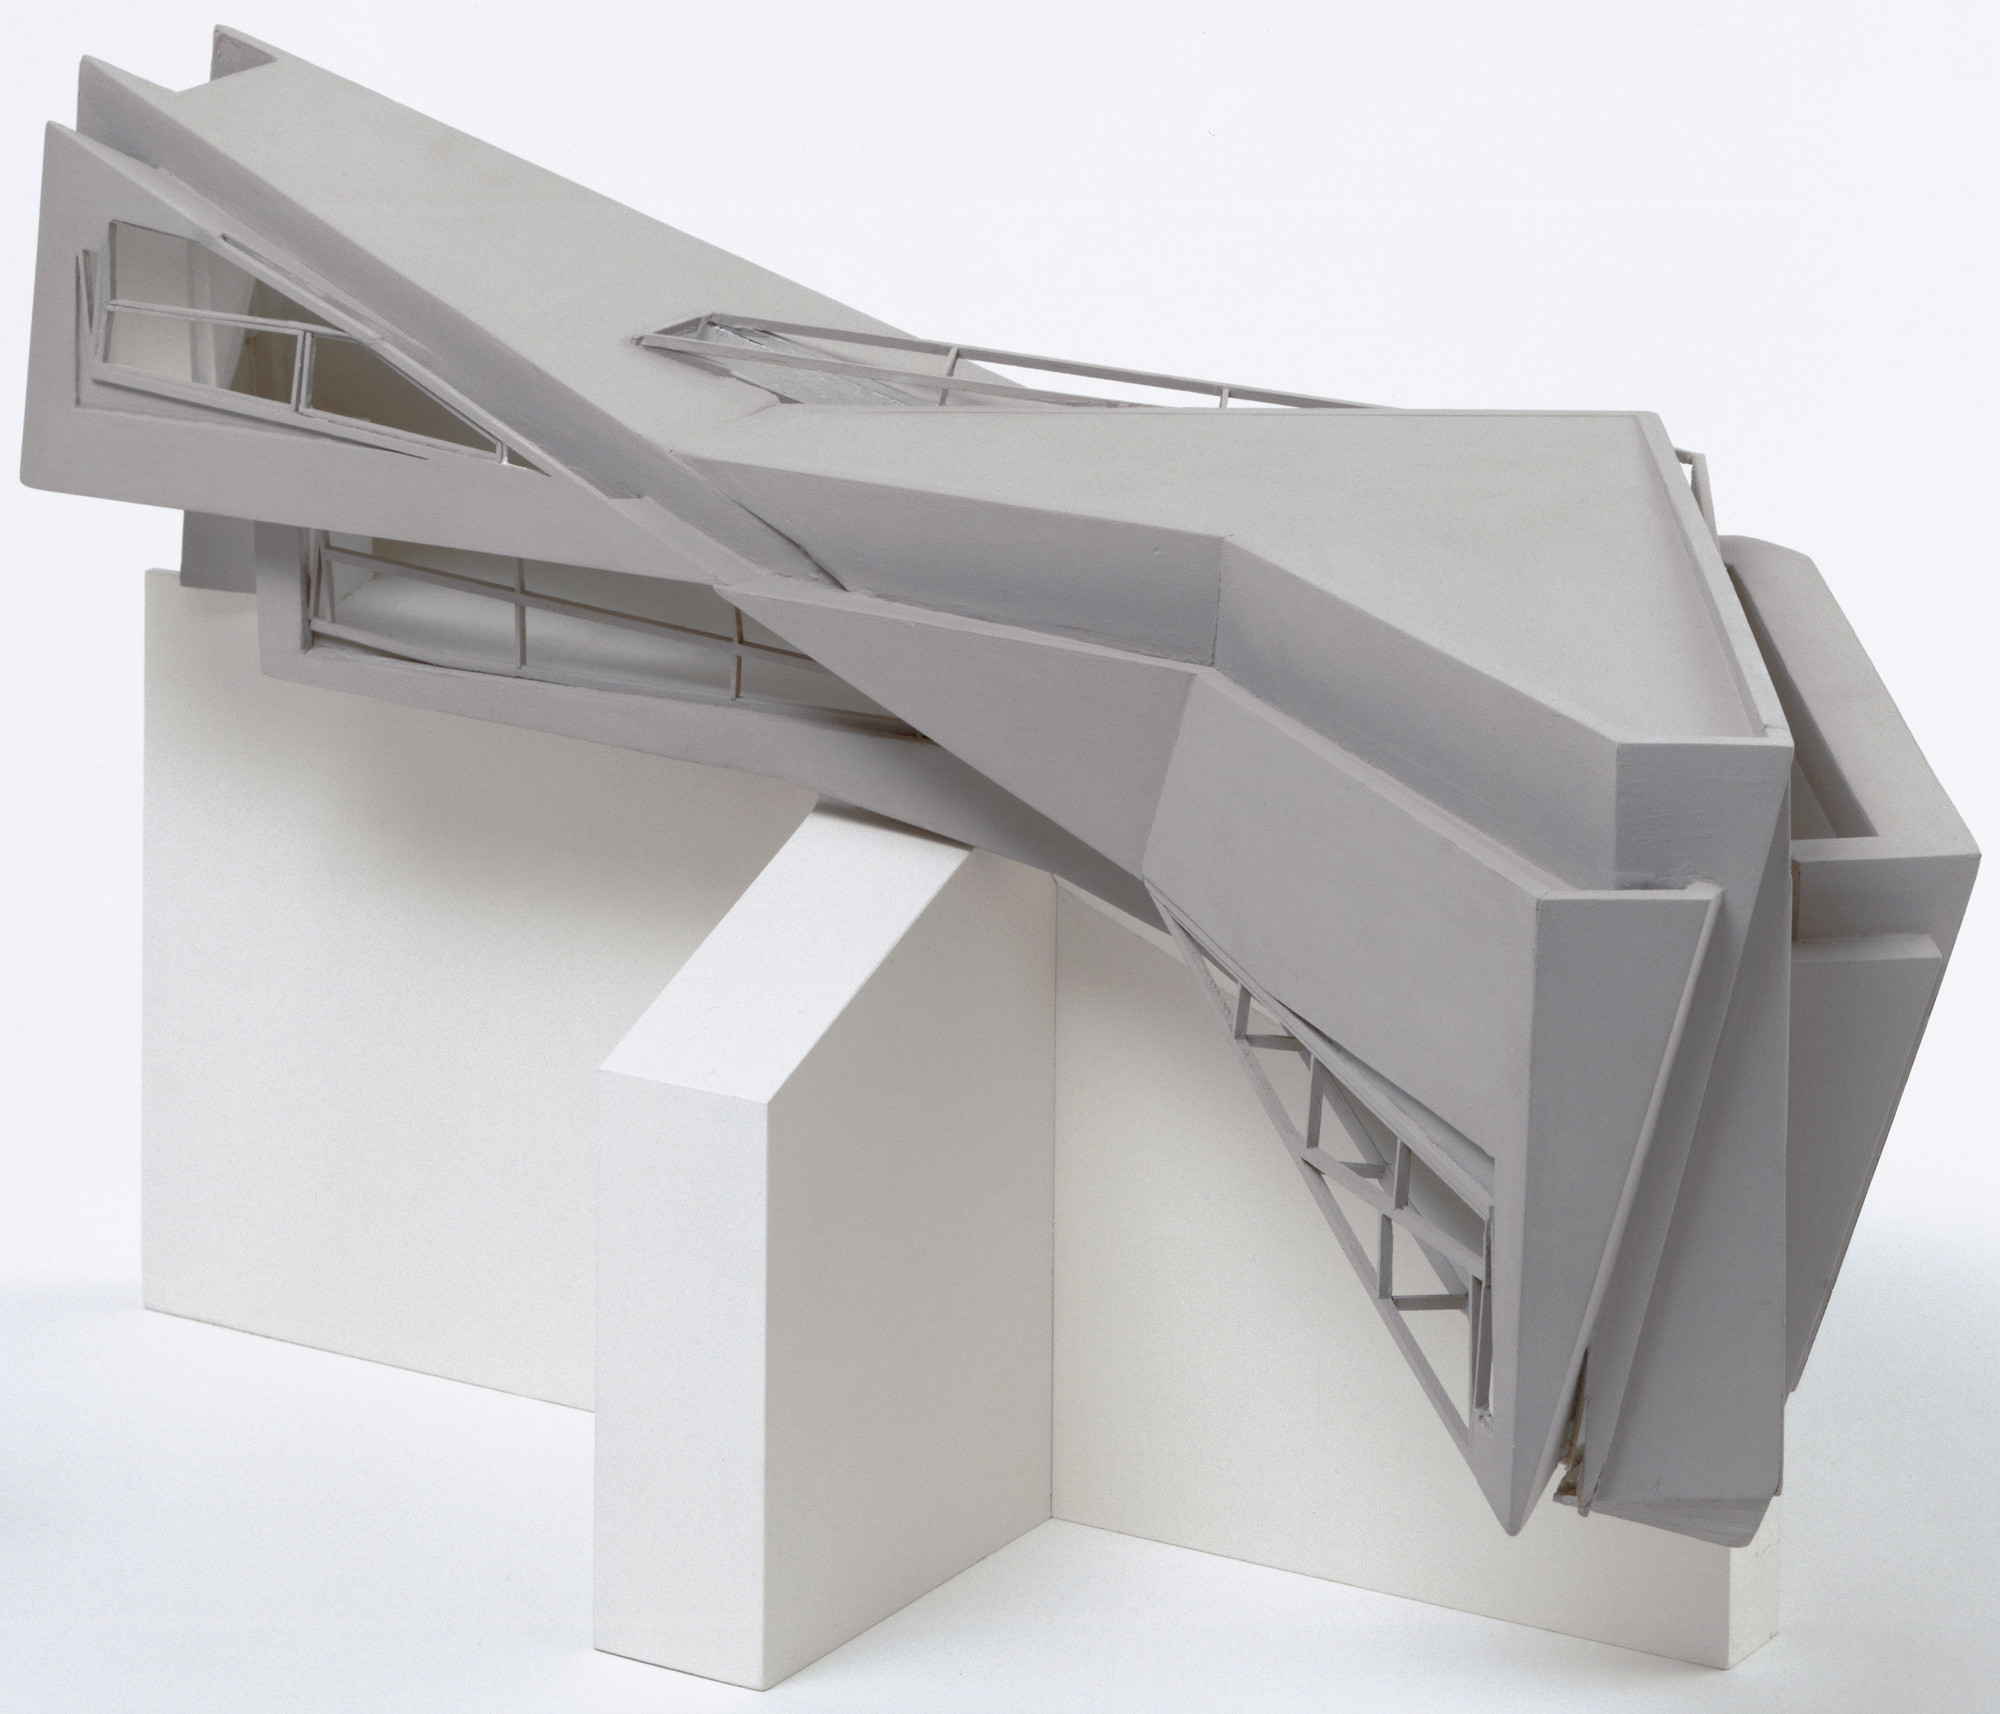 "Thomas Leeser. Twin House, Liberty, New York, Scale model 1/4""=1'. 1990-91"